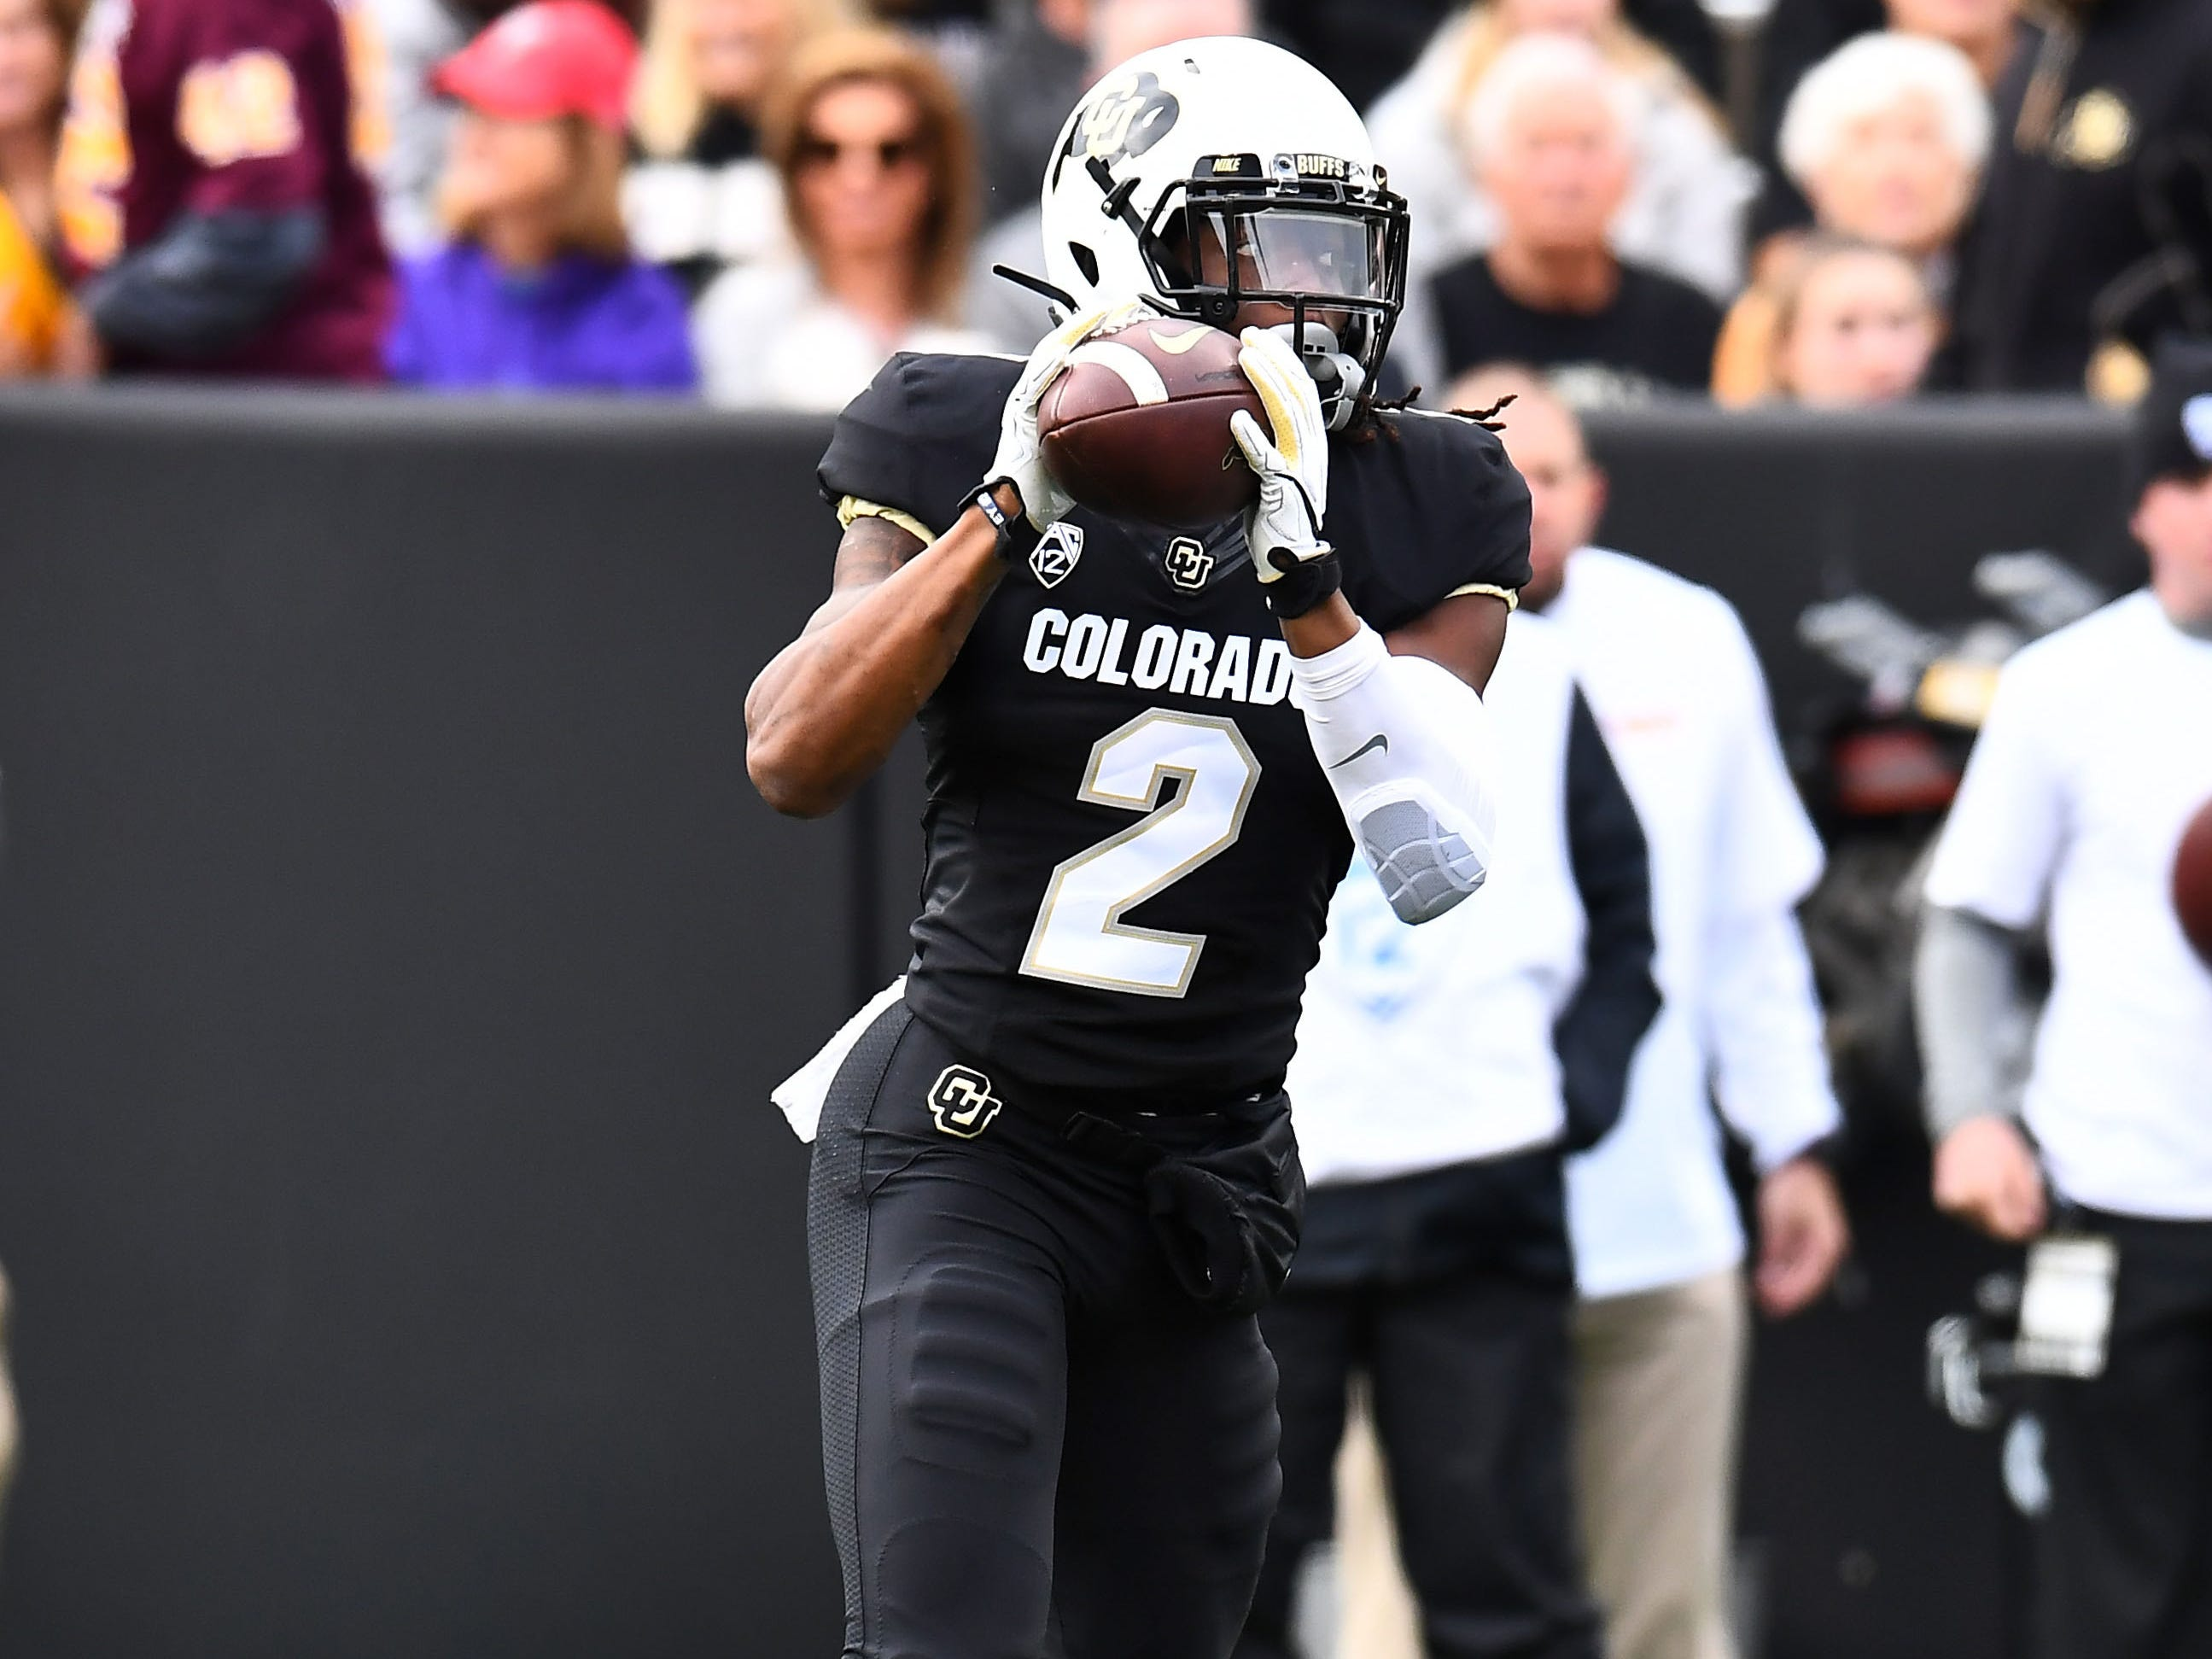 Oct 6, 2018; Boulder, CO, USA; Colorado Buffaloes wide receiver Laviska Shenault Jr. (2) pulls in a pass in the first quarter against the Arizona State Sun Devils at Folsom Field. Mandatory Credit: Ron Chenoy-USA TODAY Sports